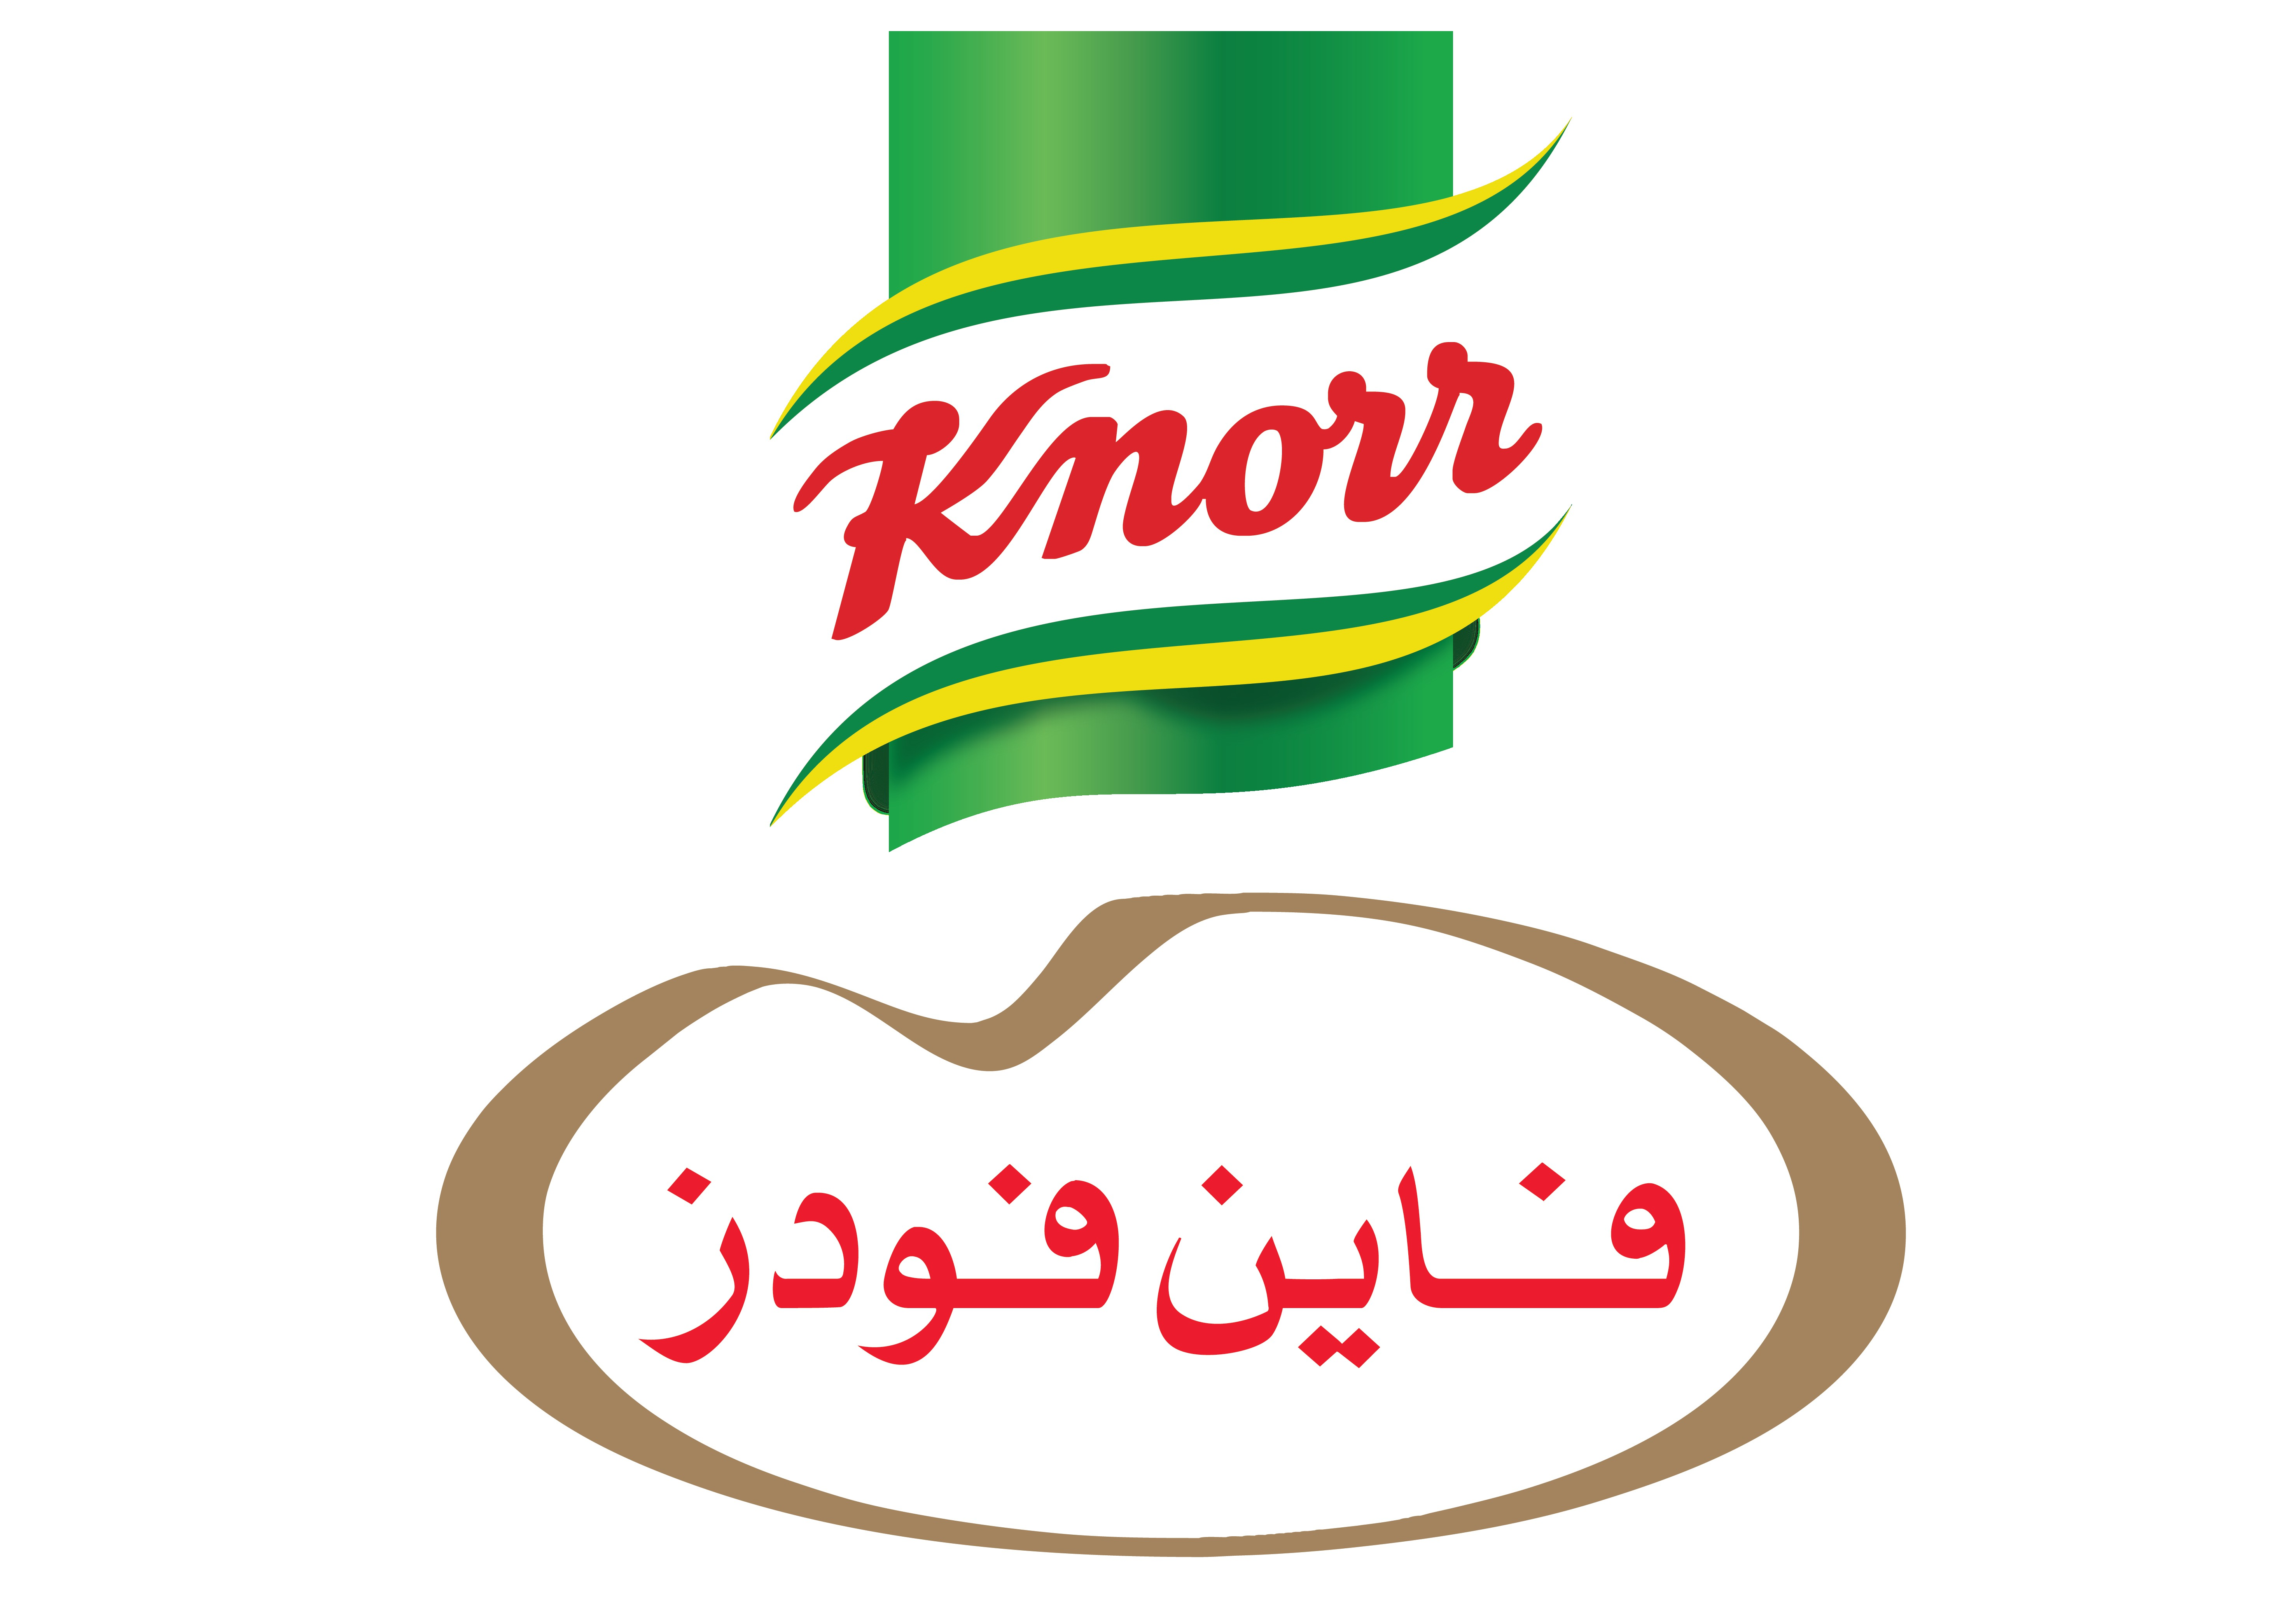 Knorr Logo - Knorr logo - What Women Want